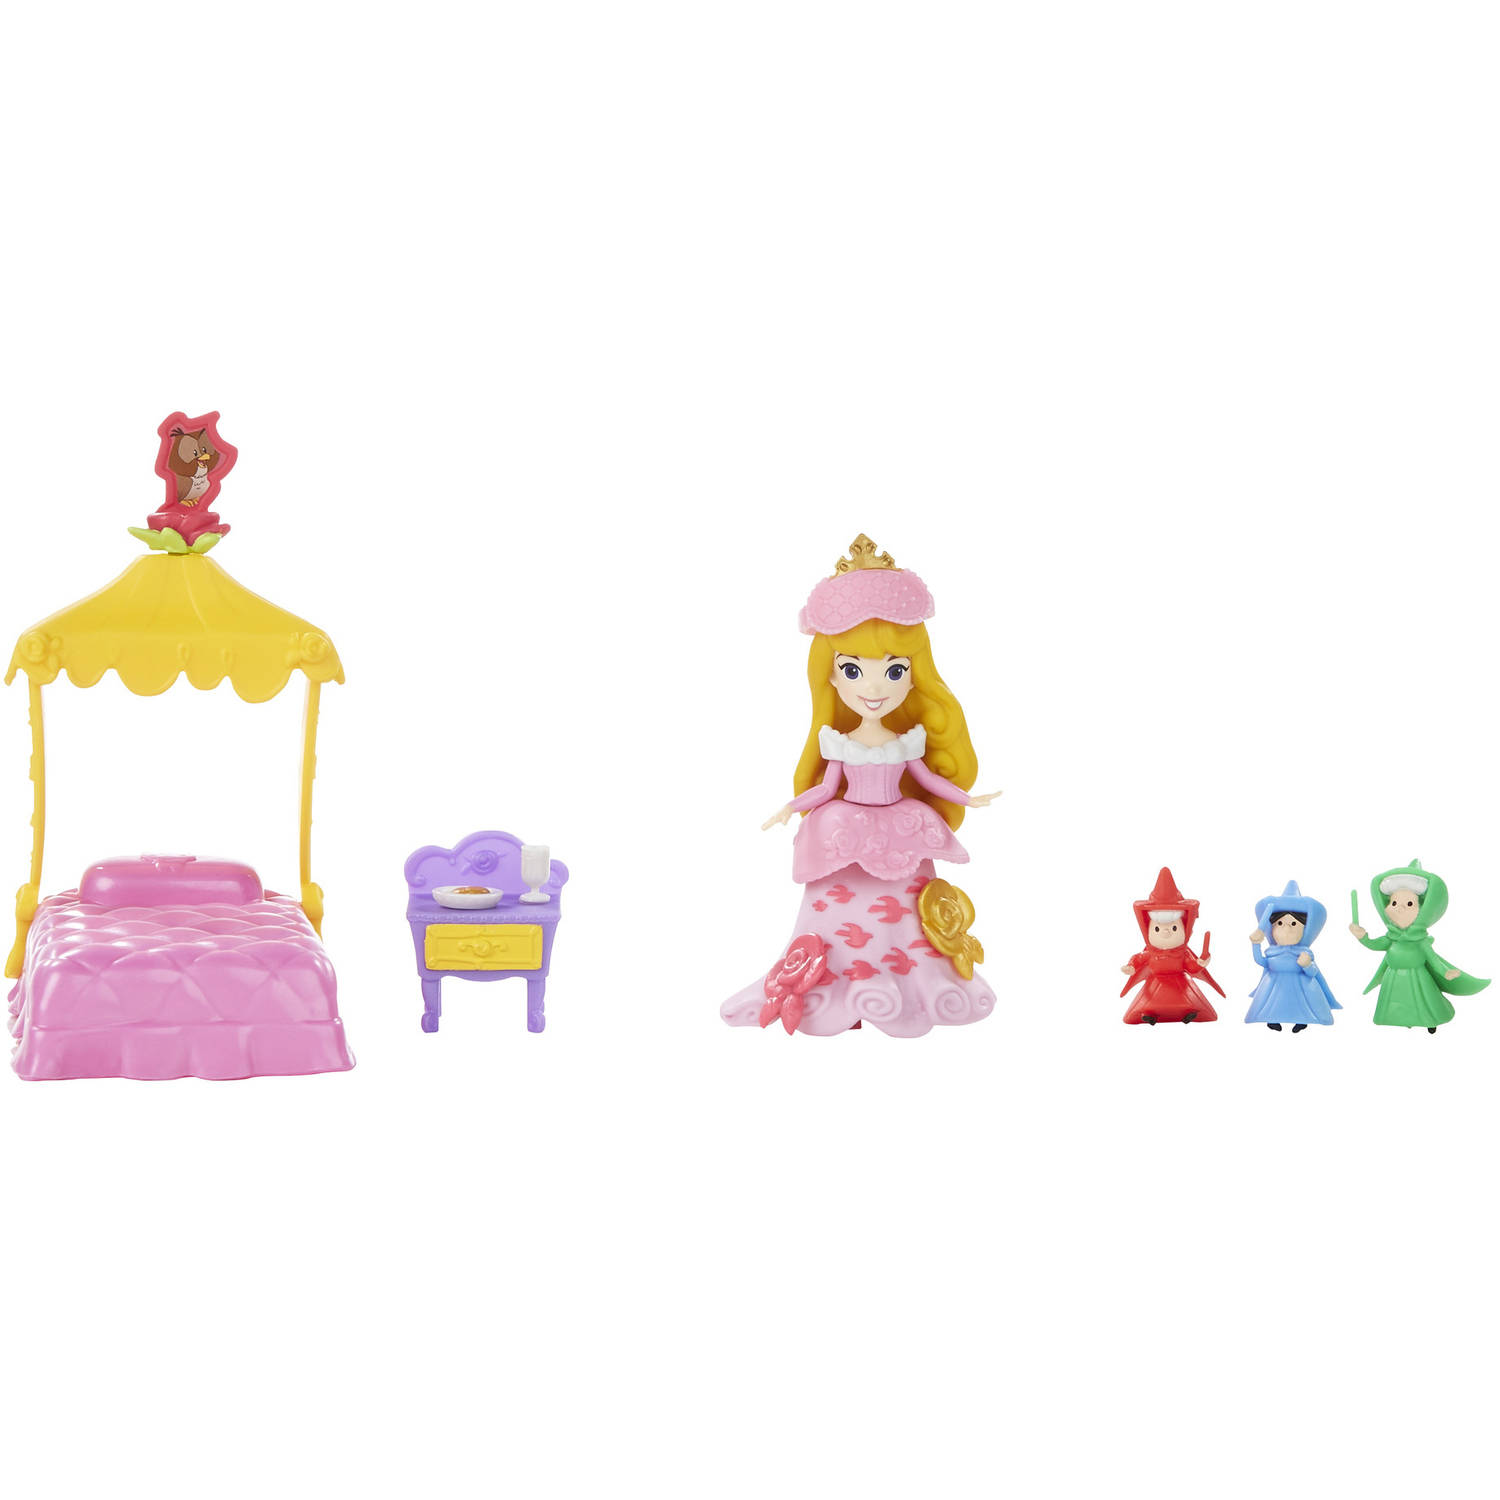 Disney Princess Little Kingdom Aurora's Fairytale Dreams by Hasbro